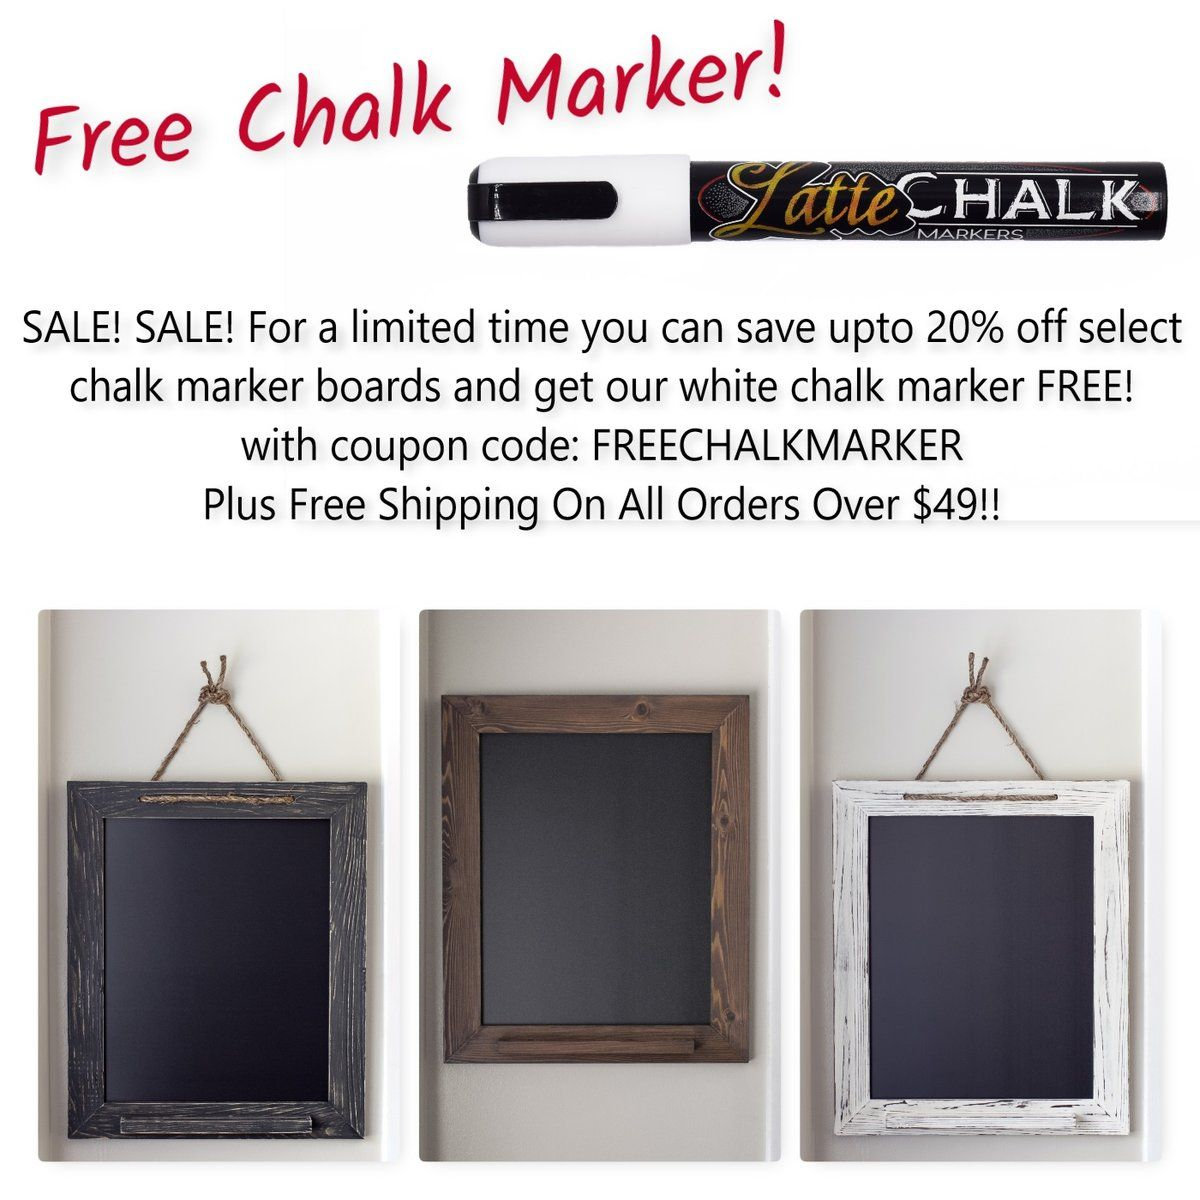 Pin by A Latte Decor on Chalkboards   Chalk markers, White ...